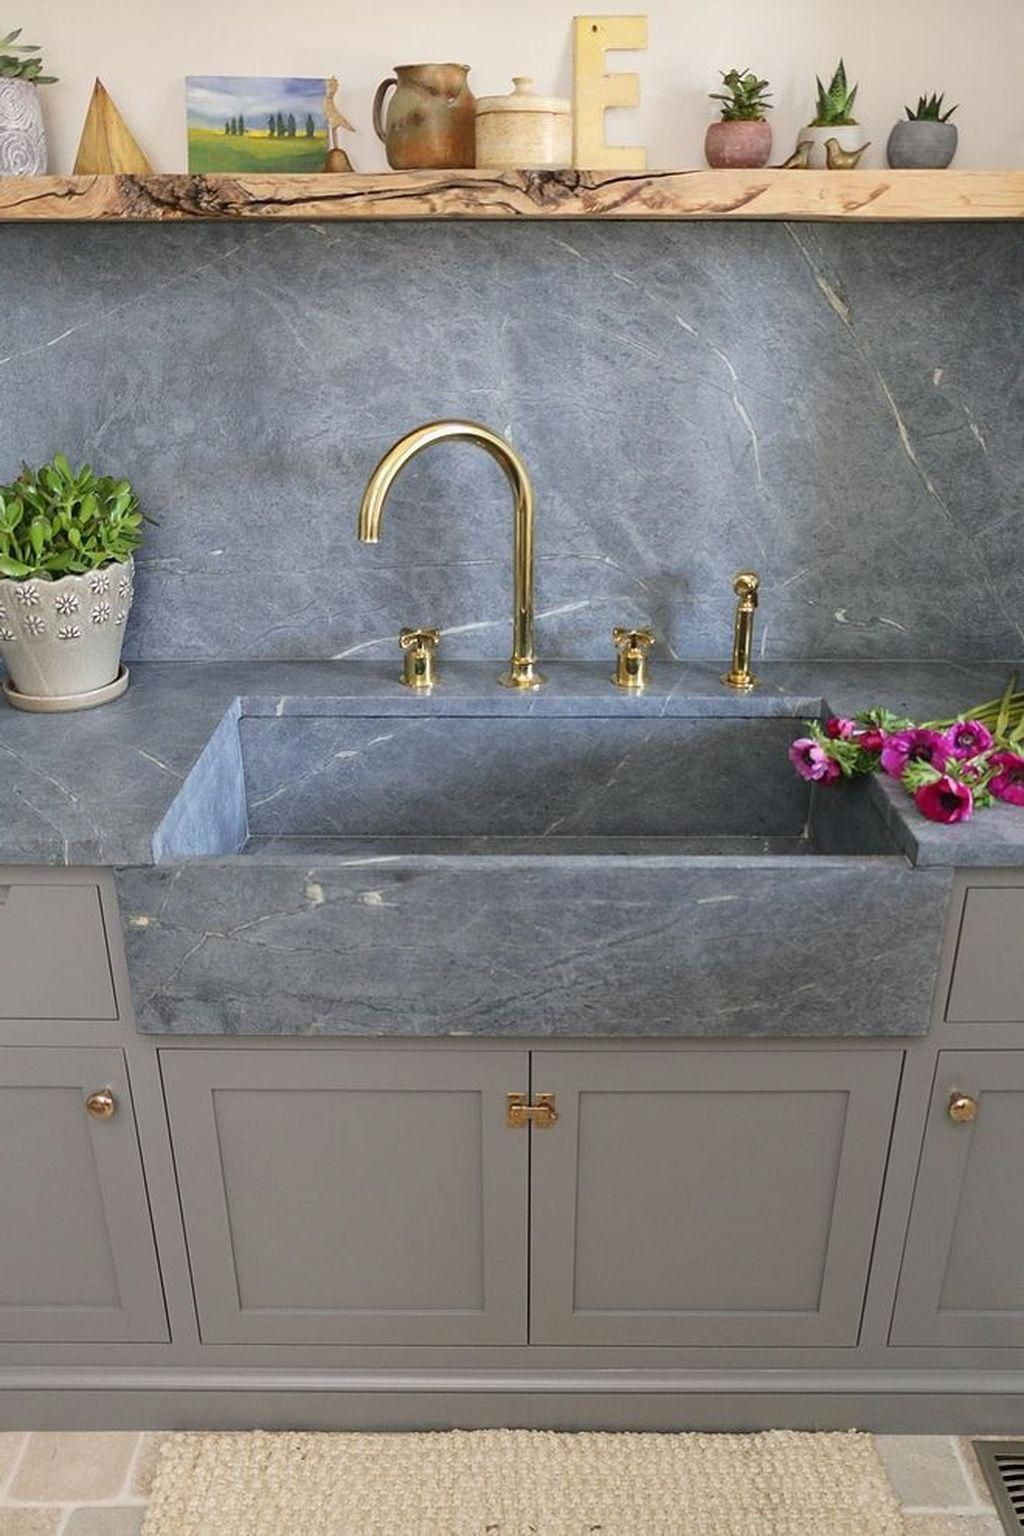 40 Gorgeous Farmhouse Sink Ideas Best For Your Kitchen Kitchensink Dining Room Renovation Farmhouse Sink Kitchen Renovation